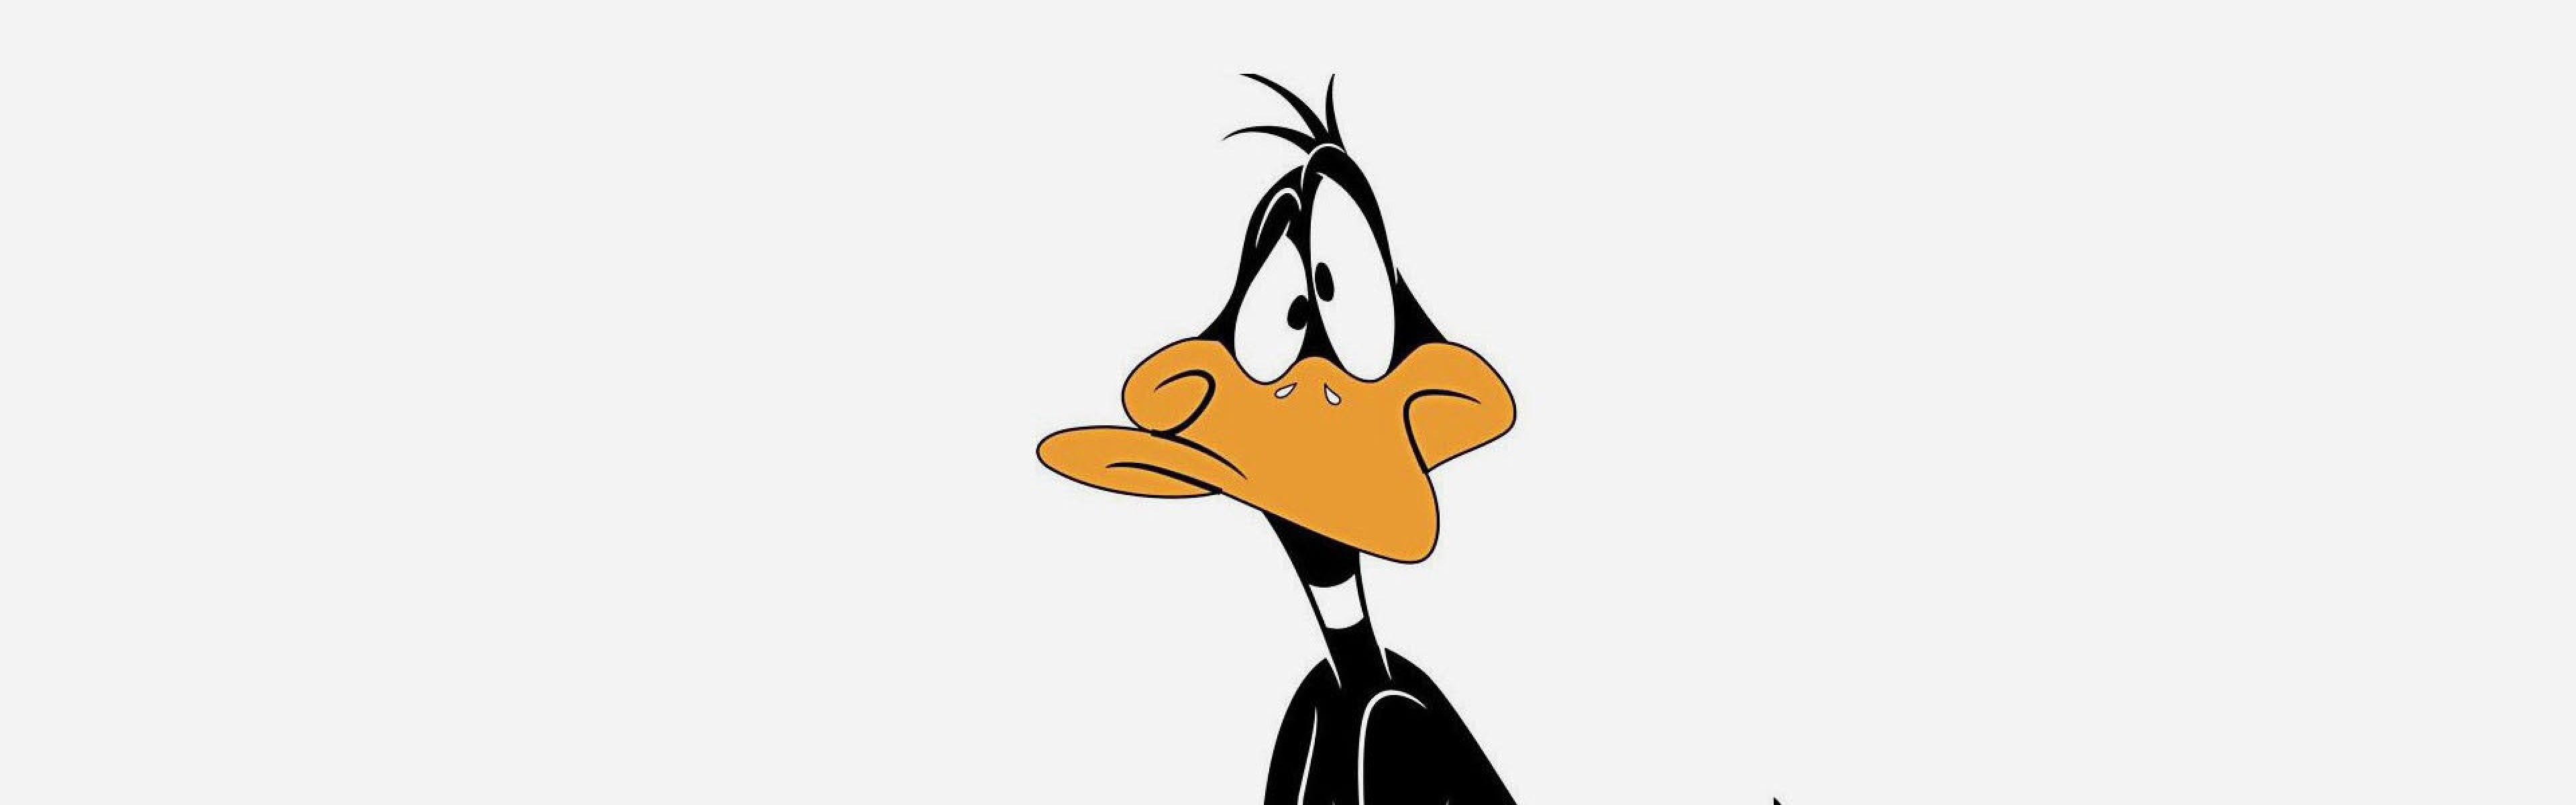 Daffy Duck Cartoon Art